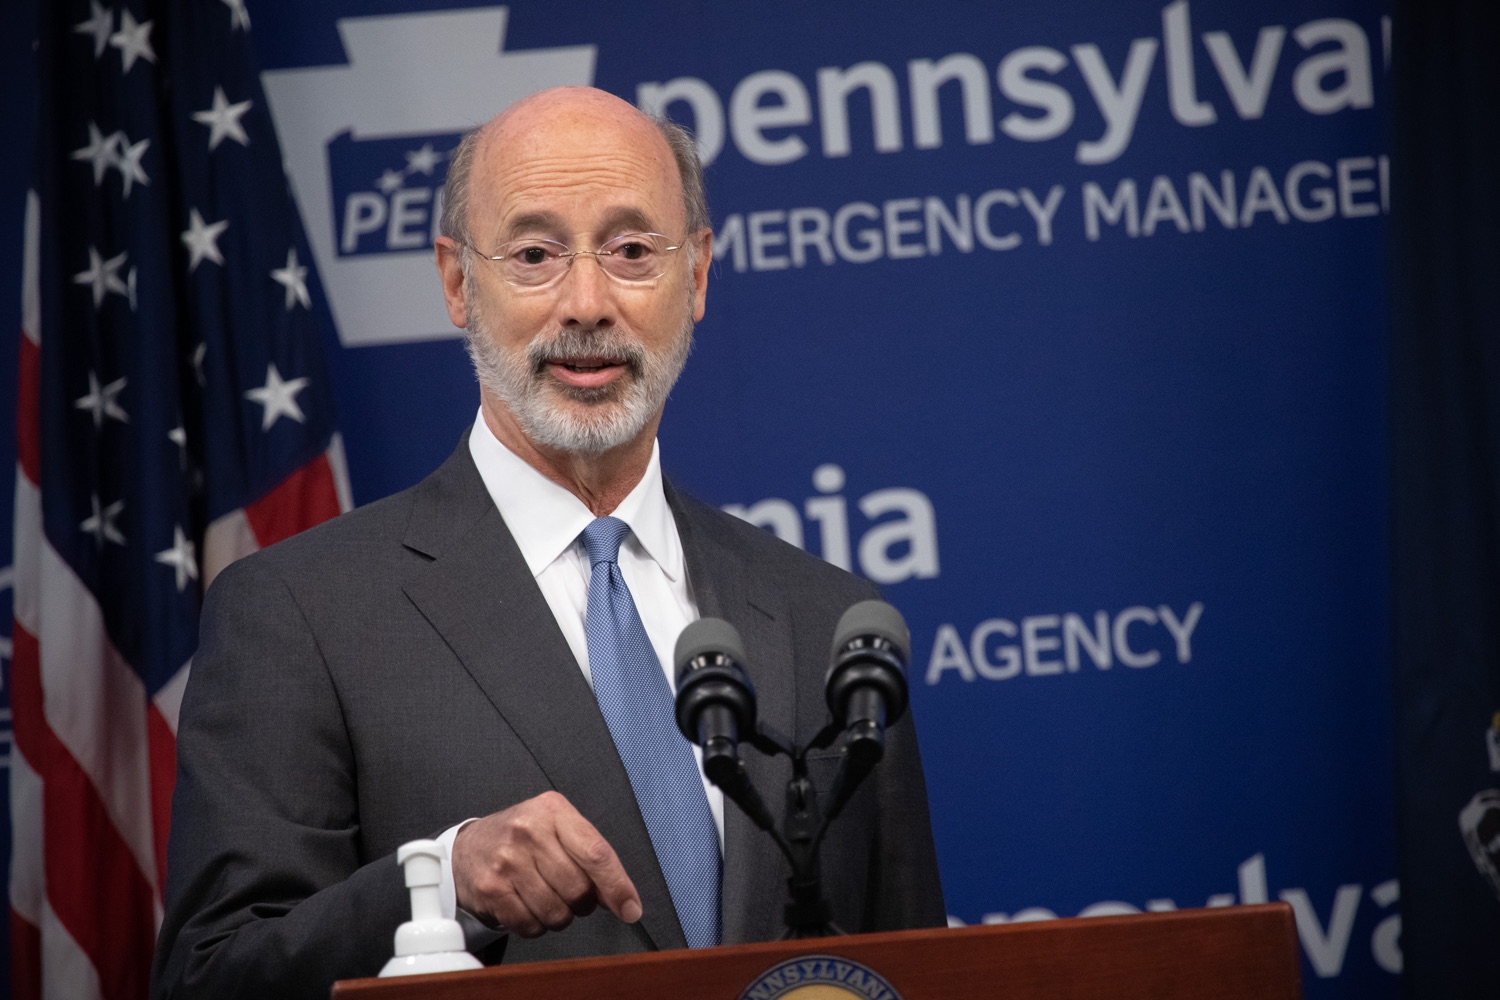 "<a href=""https://filesource.wostreaming.net/commonwealthofpa/photo/18088_gov_covid_update_dz_0012.jpg"" target=""_blank"">⇣ Download Photo<br></a>Governor Tom Wolf answers questions from the press. Governor Tom Wolf announced that people with intellectual disabilities and autism and the providers of support services for these vulnerable Pennsylvanians will receive $260 million in CARES Act funding to help continue to provide services during the COVID-19 pandemic.  Gov. Wolf was joined by Department of Human Services Secretary Teresa Miller, who outlined to details of funding allocations.  JUNE 15, 2020 - HARRISBURG, PA"